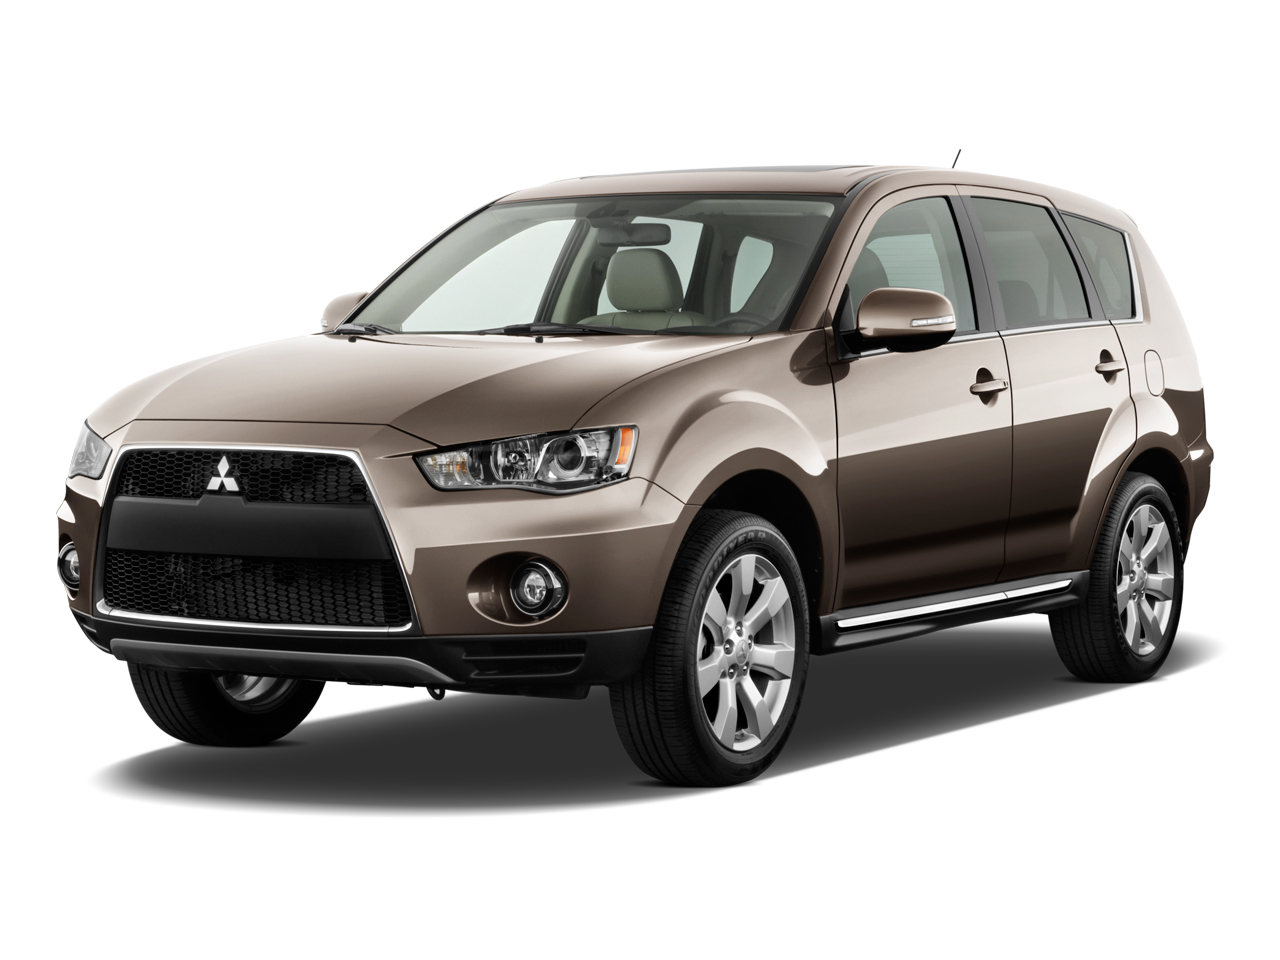 2011 Mitsubishi Outlander SUV ES 4dr Front wheel Drive Promotions bet at home Exterior ...